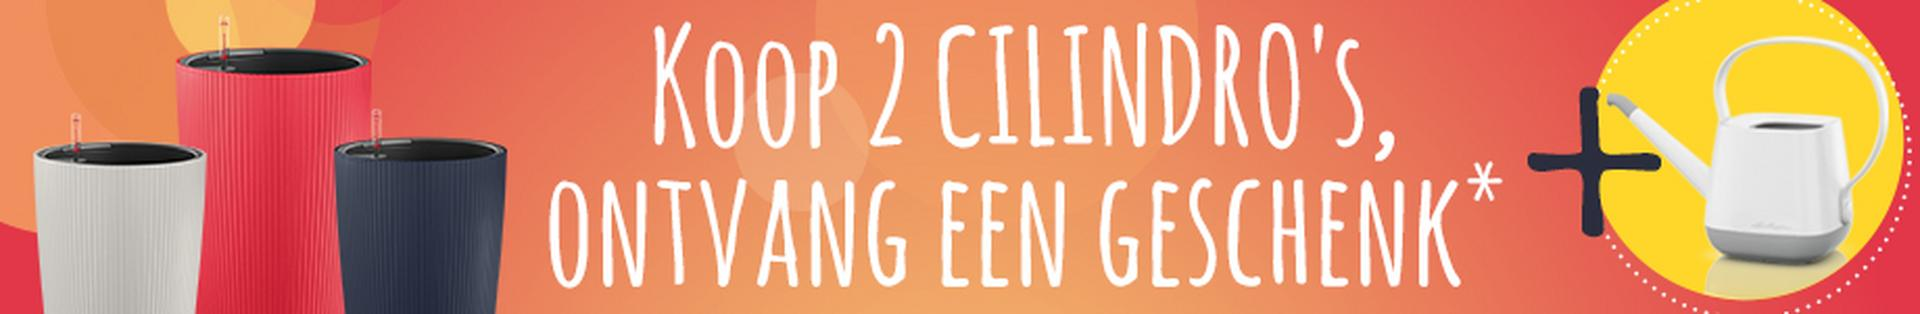 le_listing_banner_cilindro_07-2019_xs_nl